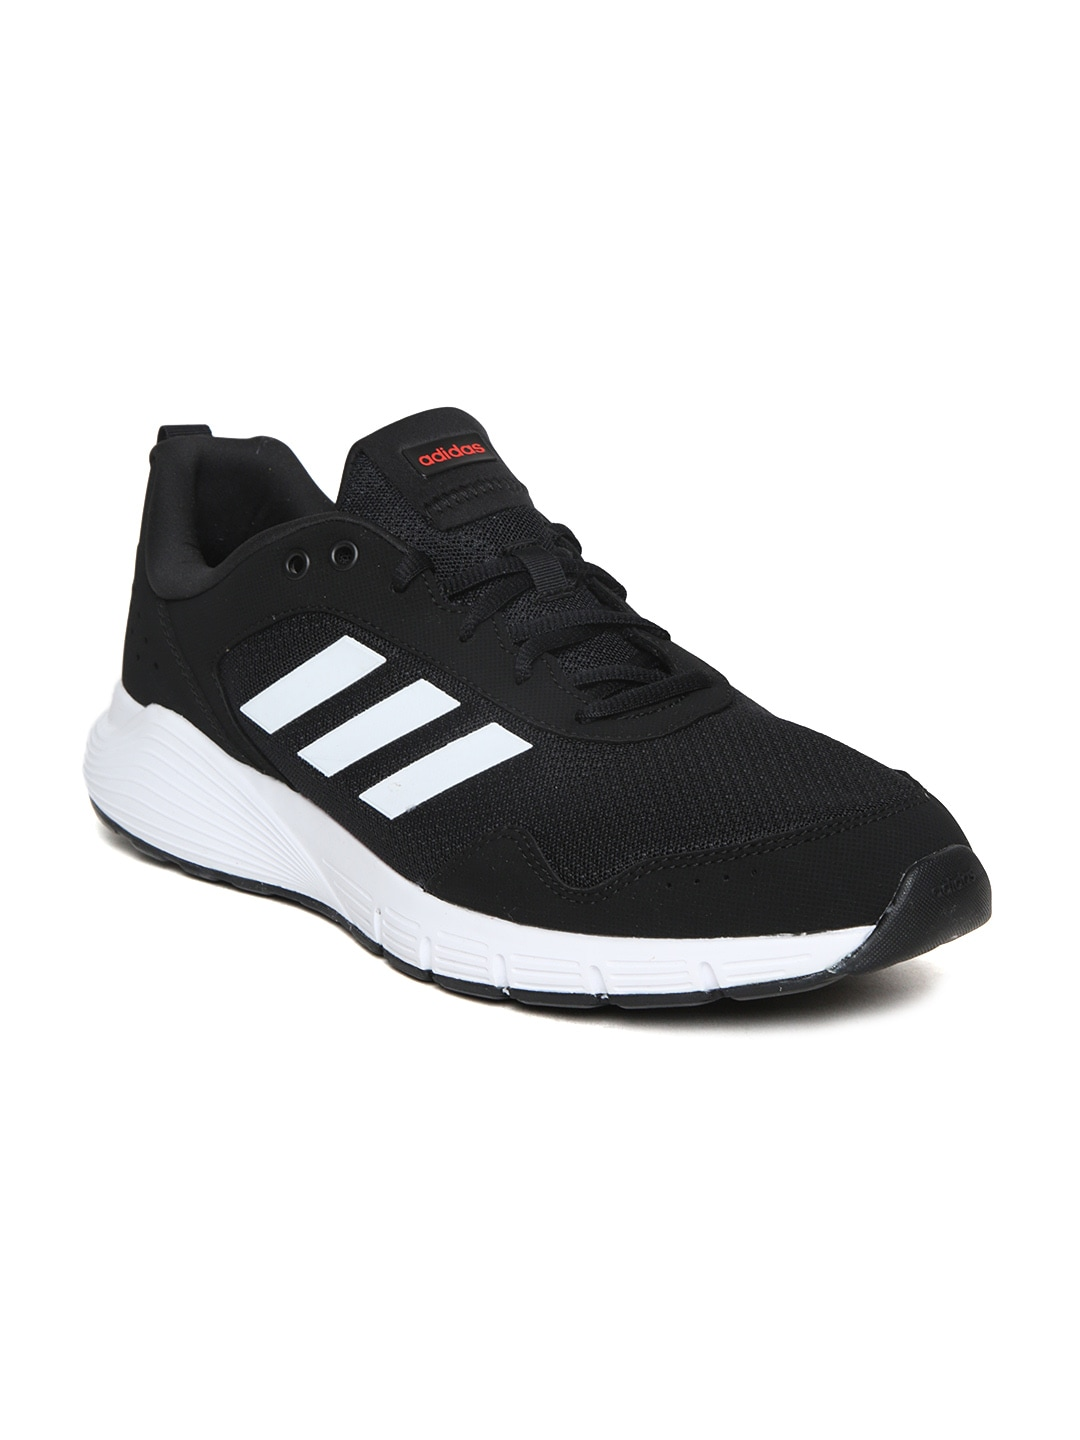 Adidas Campus Shoes - Buy Adidas Campus Shoes online in India c8fa03b0c